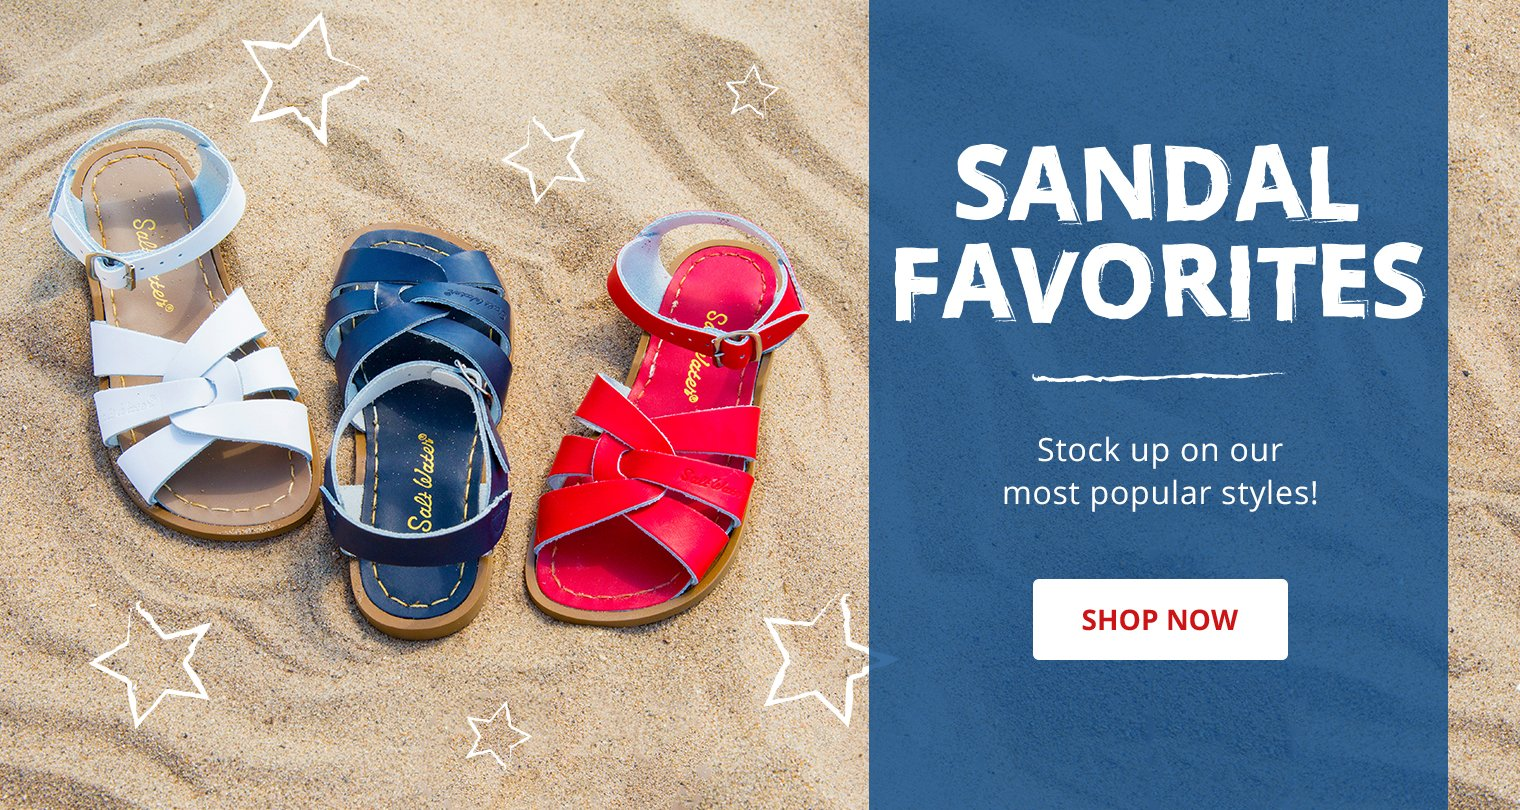 Sandal favorites. Stock up on our must popular styles. Shop now.